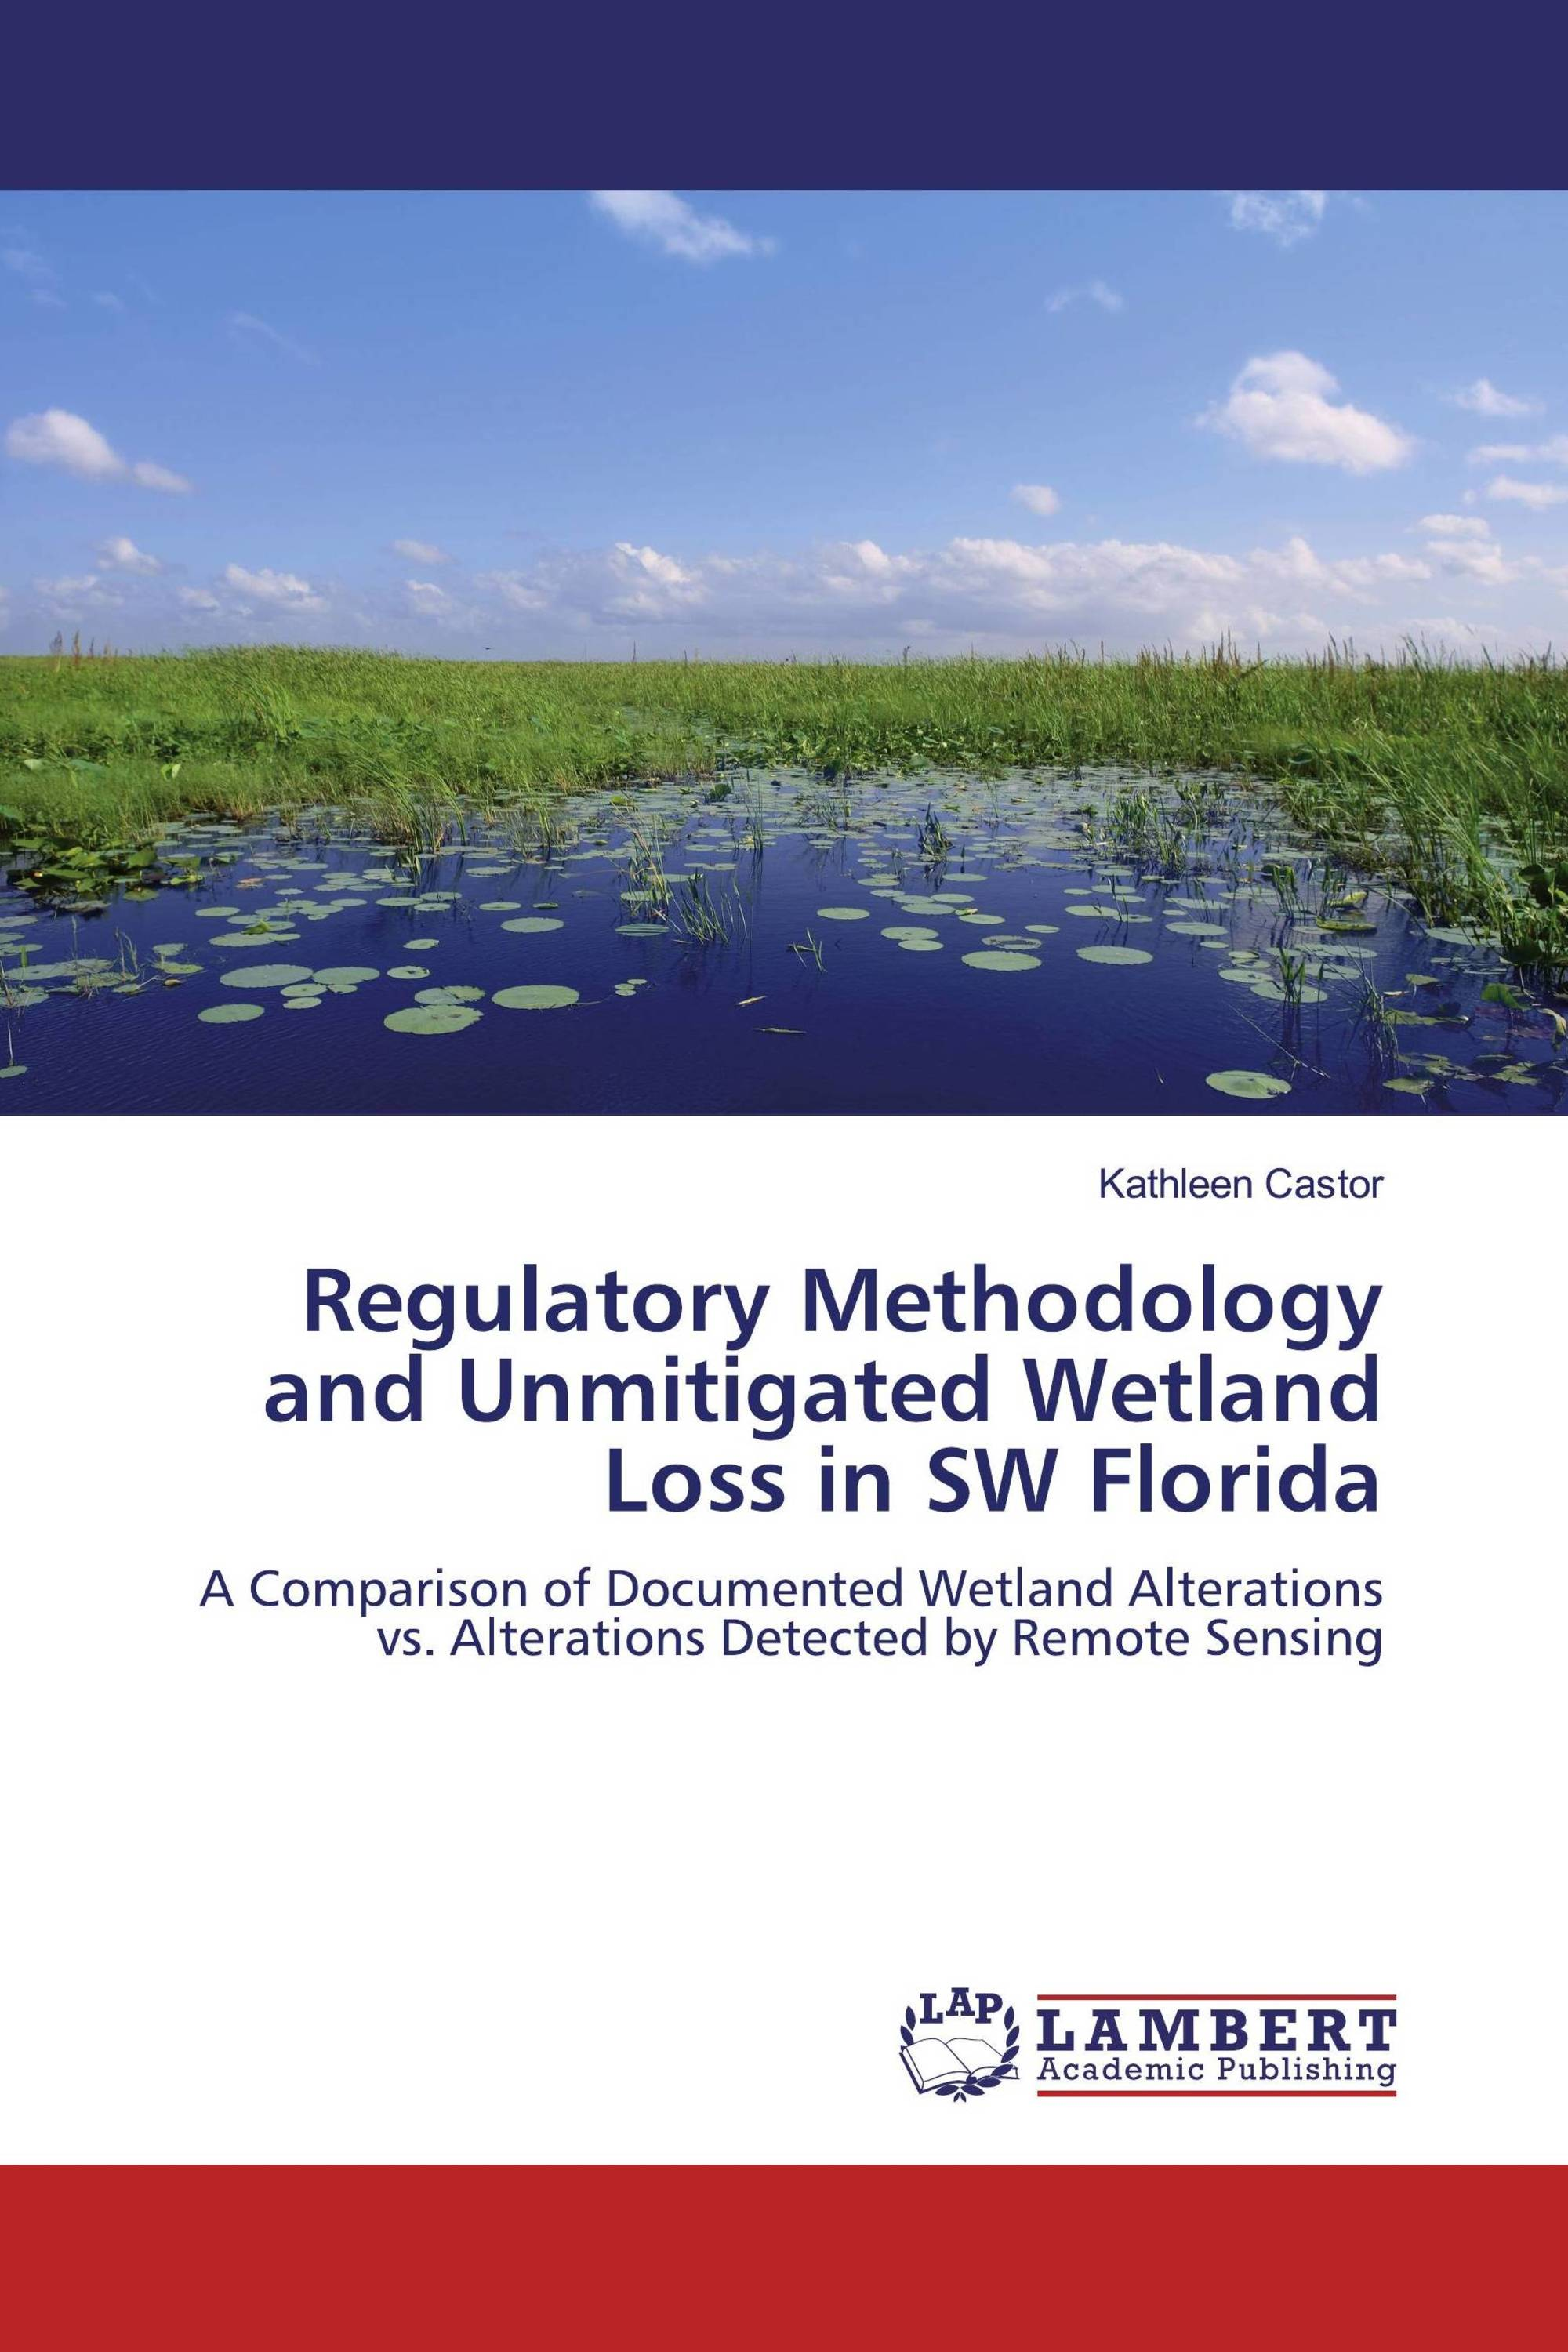 Regulatory Methodology and Unmitigated Wetland Loss in SW Florida